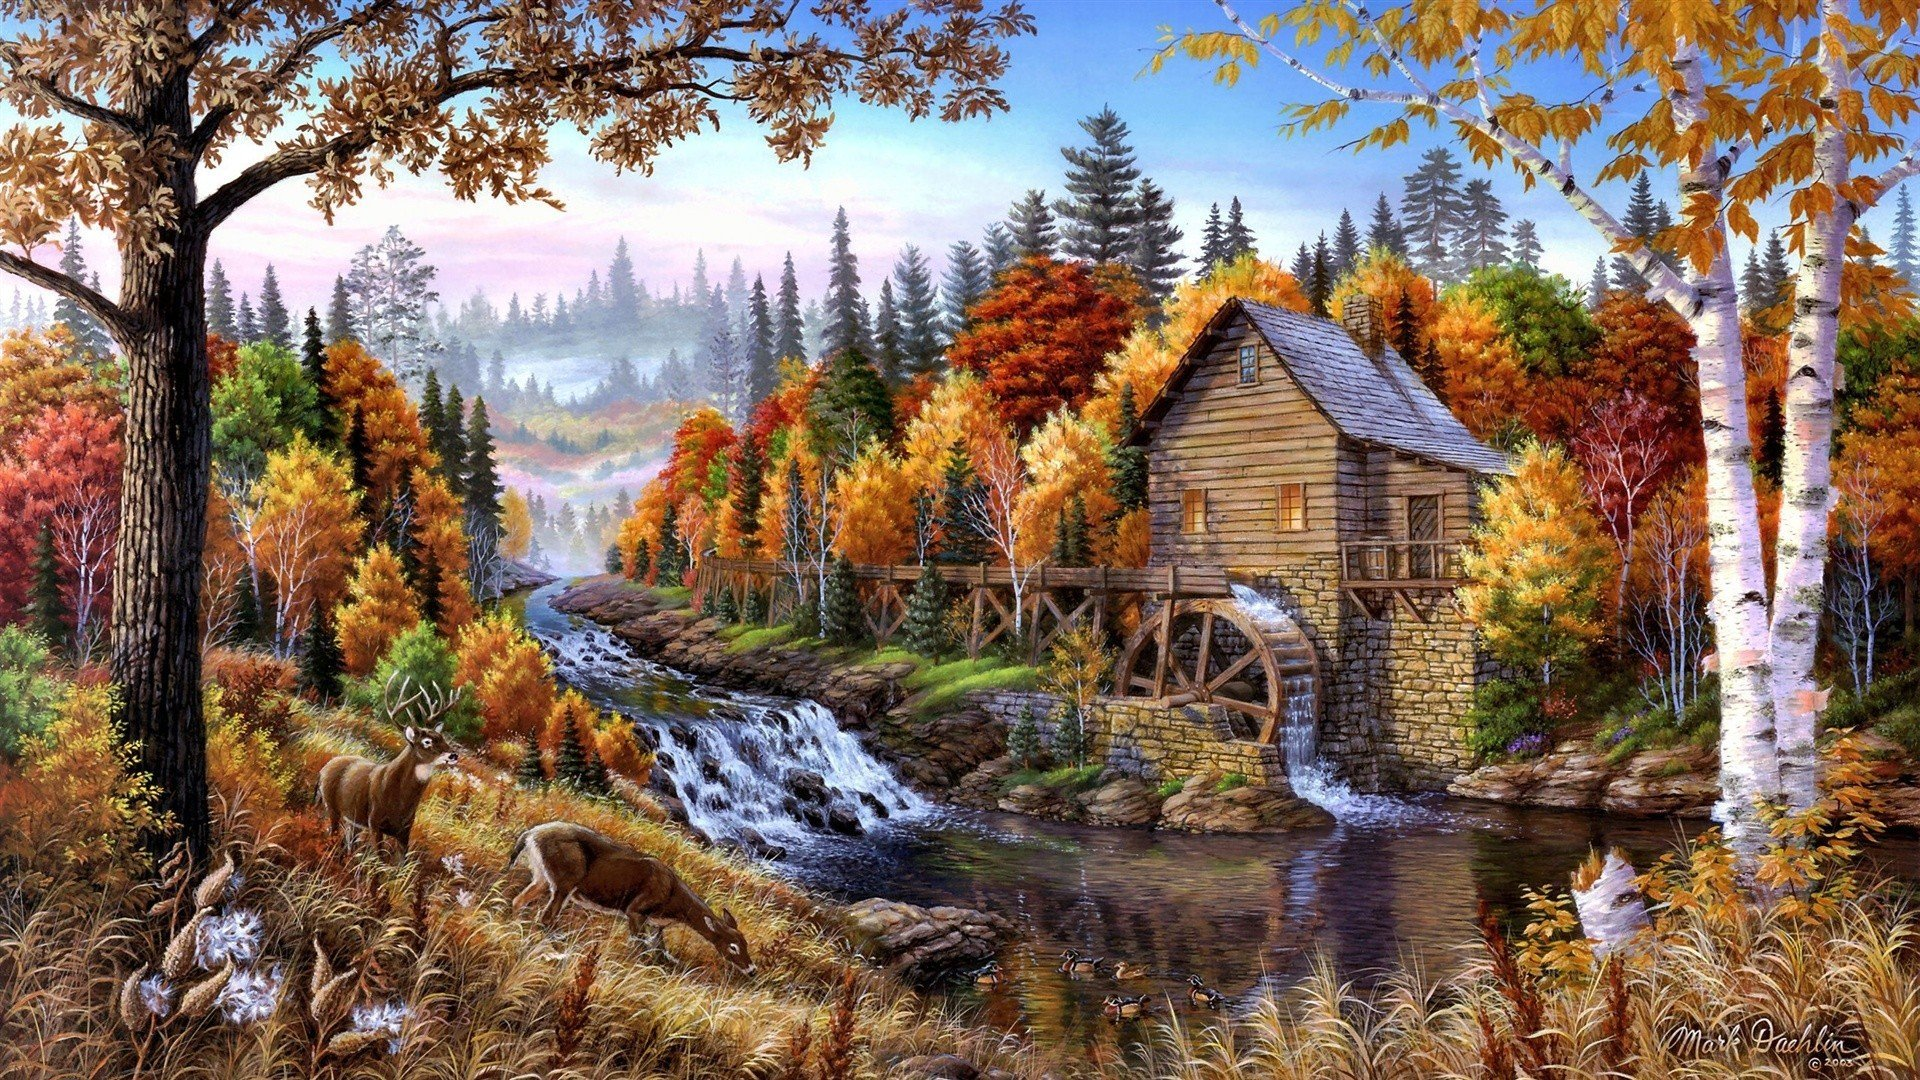 Artwork Forests Home Oil Painting Paintings Wallpaper   Hd 1920x1080